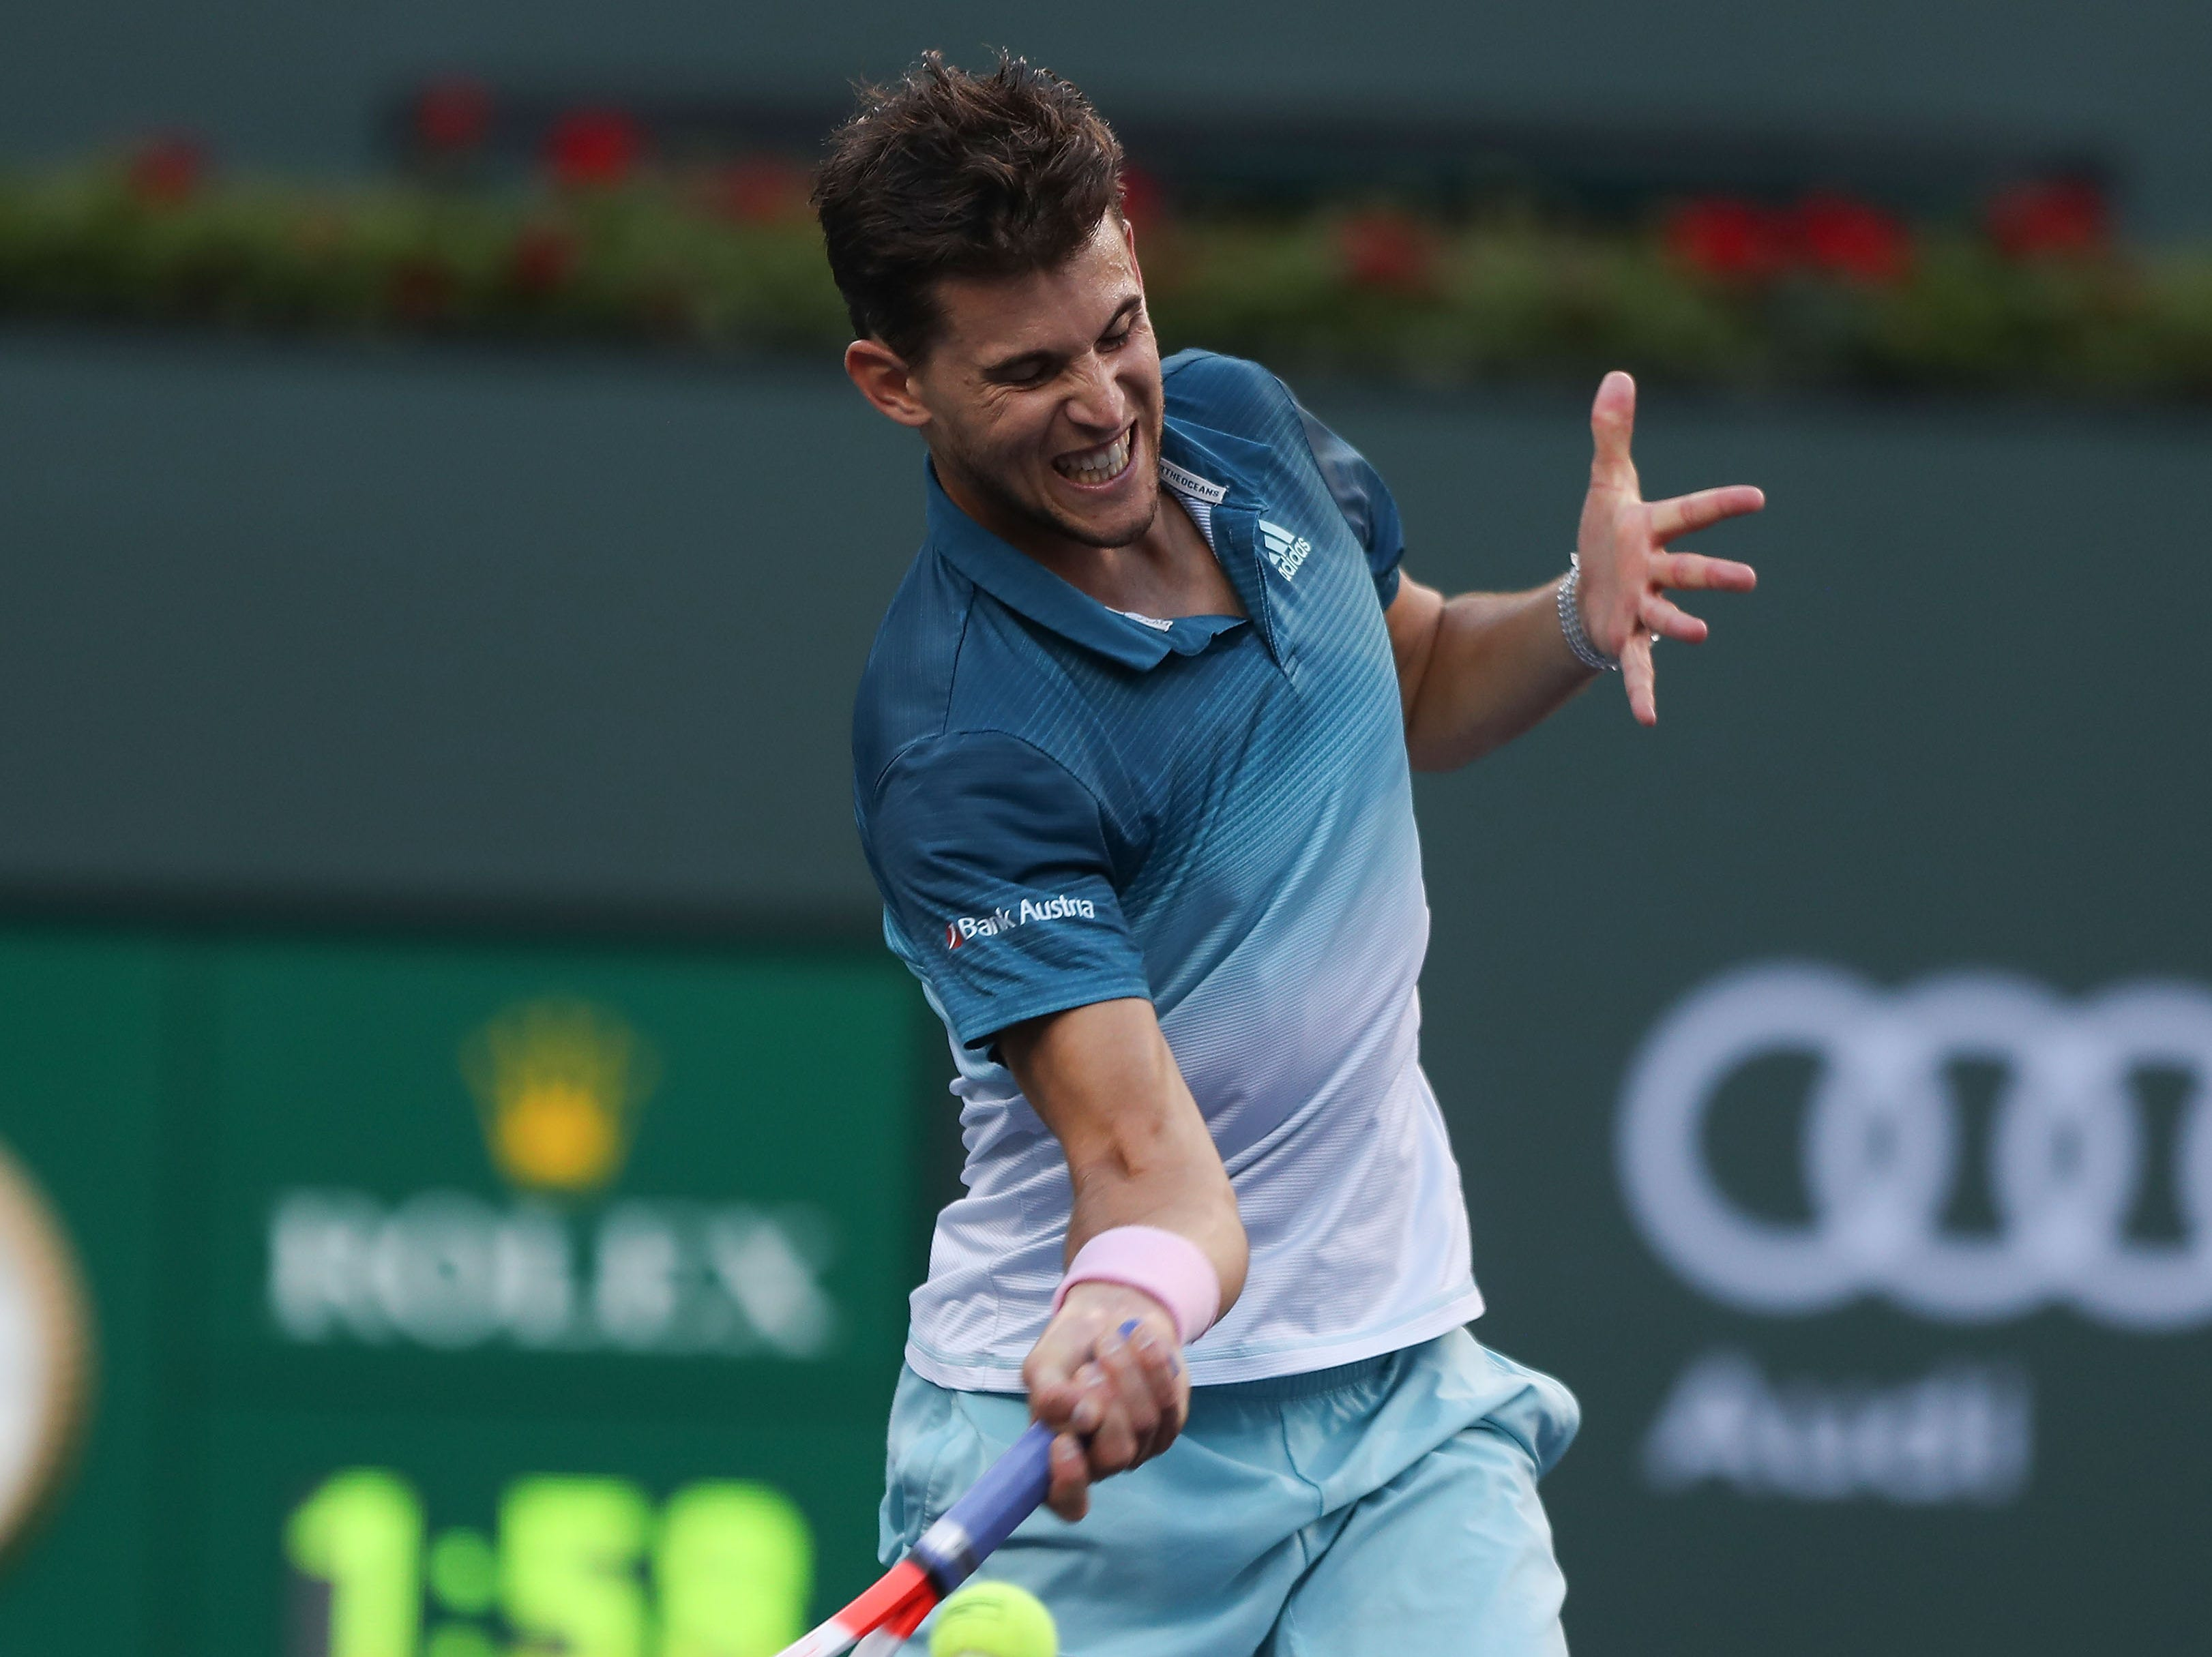 Dominic Thiem hits a shot during his win over Roger Federer at the Paribas Open final in Indian Wells, March 17, 2019.